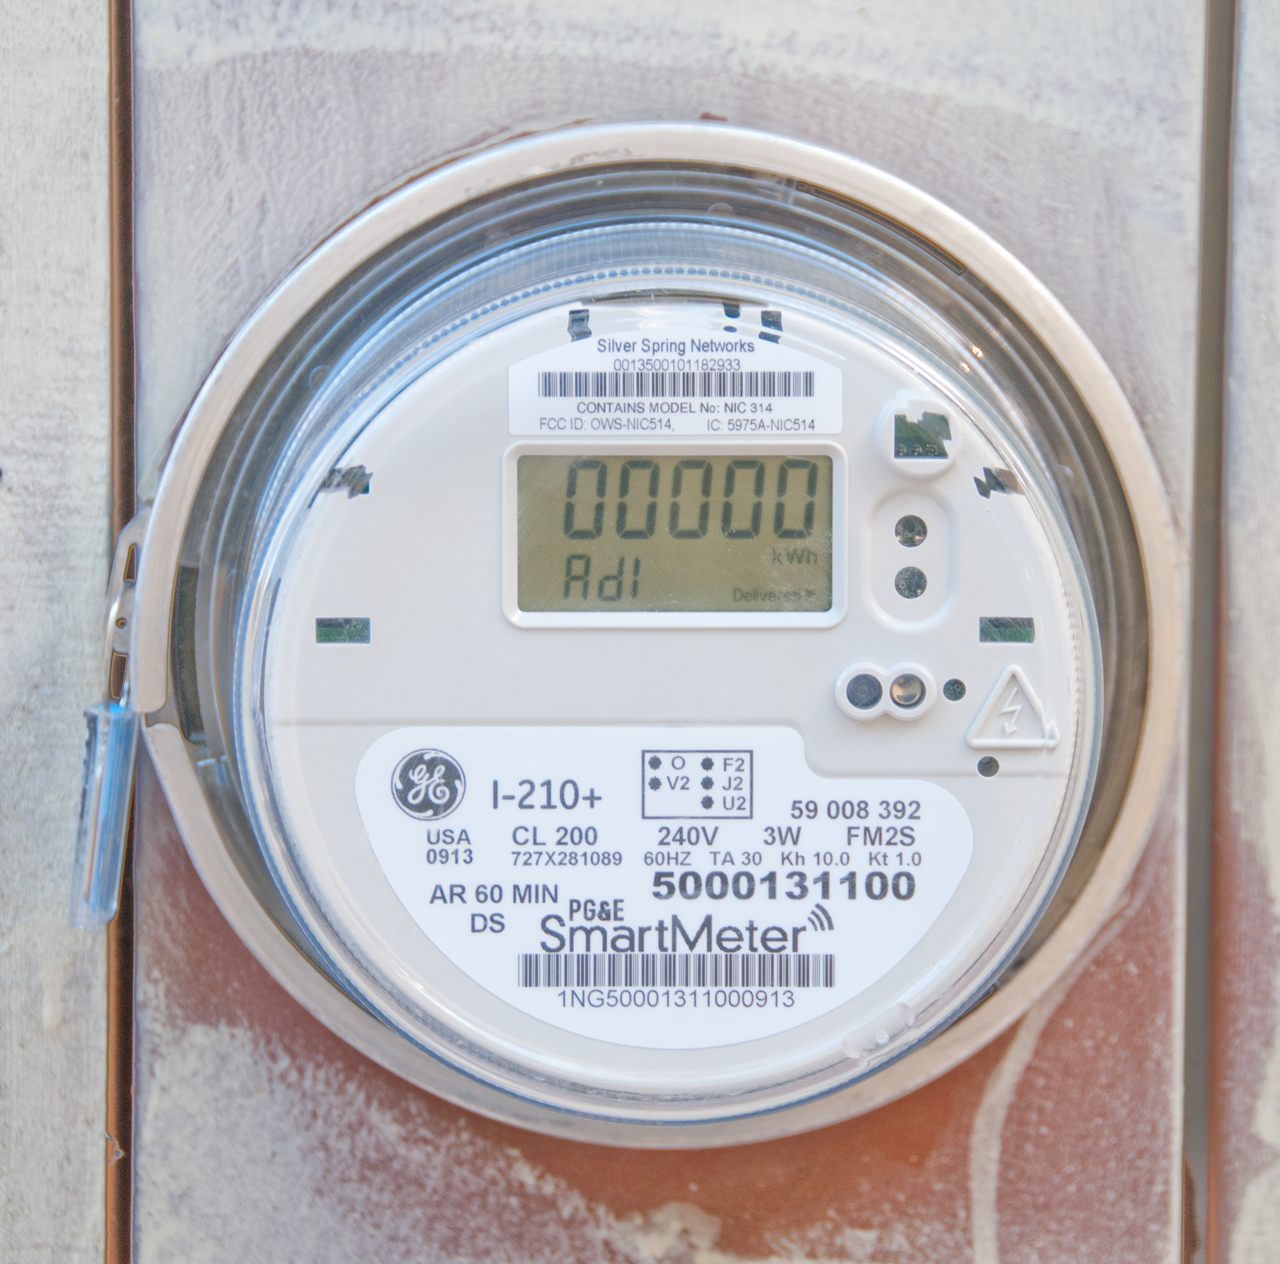 SmartEmeter03b smart utility meters ge kilowatt hour meter wiring diagram at alyssarenee.co